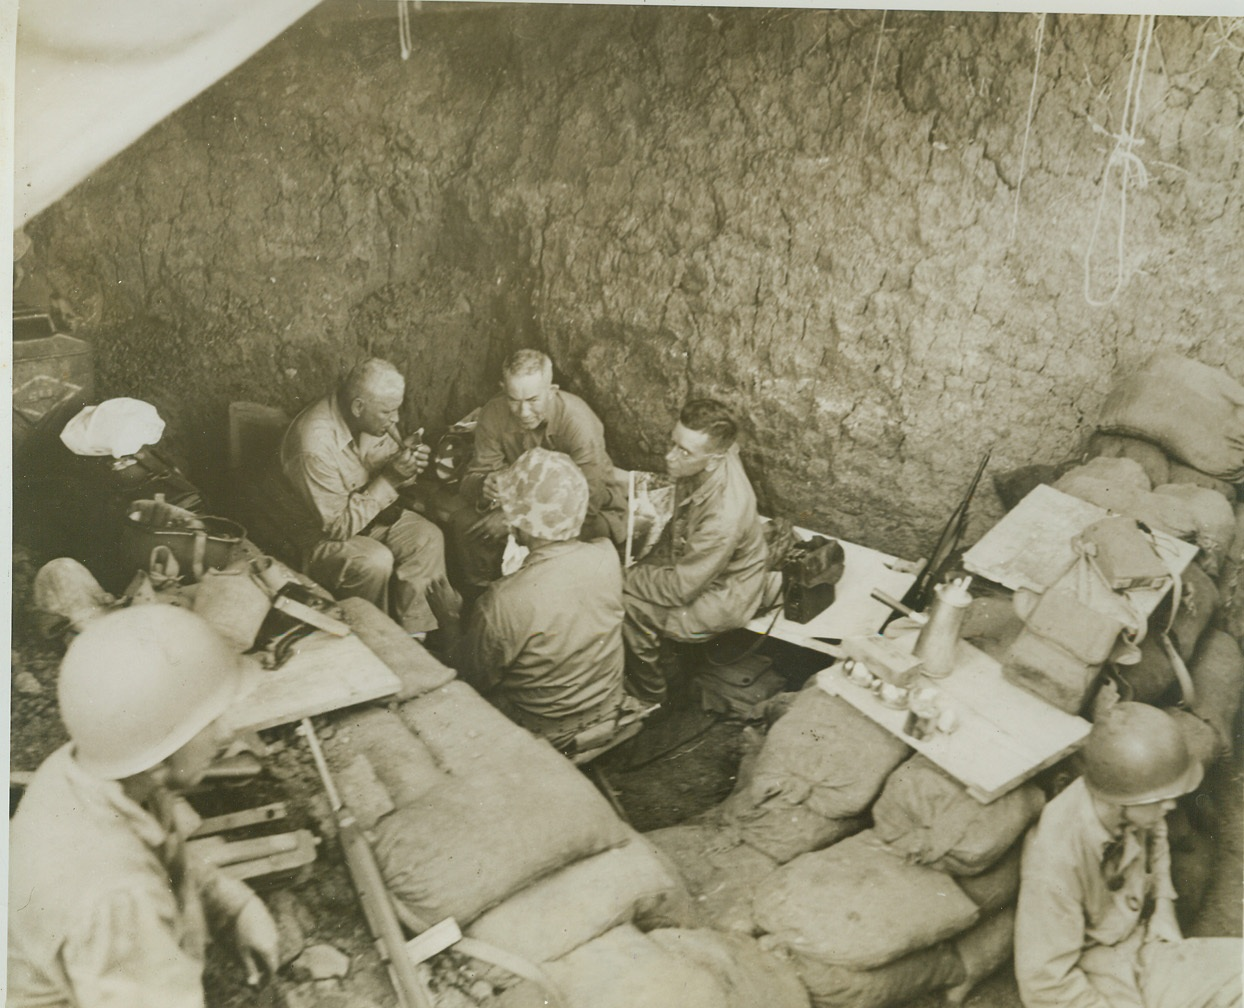 Underground Guam Command Post, 8/22/1944. GUAM -- In this super foxhole turned into a command post on Guam, Maj. Gen. Roy S. Geiger (left), commander of Third Marine Amphibious Corps, confers with Maj. Gen. Allen H. Turnage, USMC. Sand bags and alert sentries furnish additional protection against possible Jap interruption of this battlefront strategy huddle.  Credit (Marine Corps Photo from ACME);